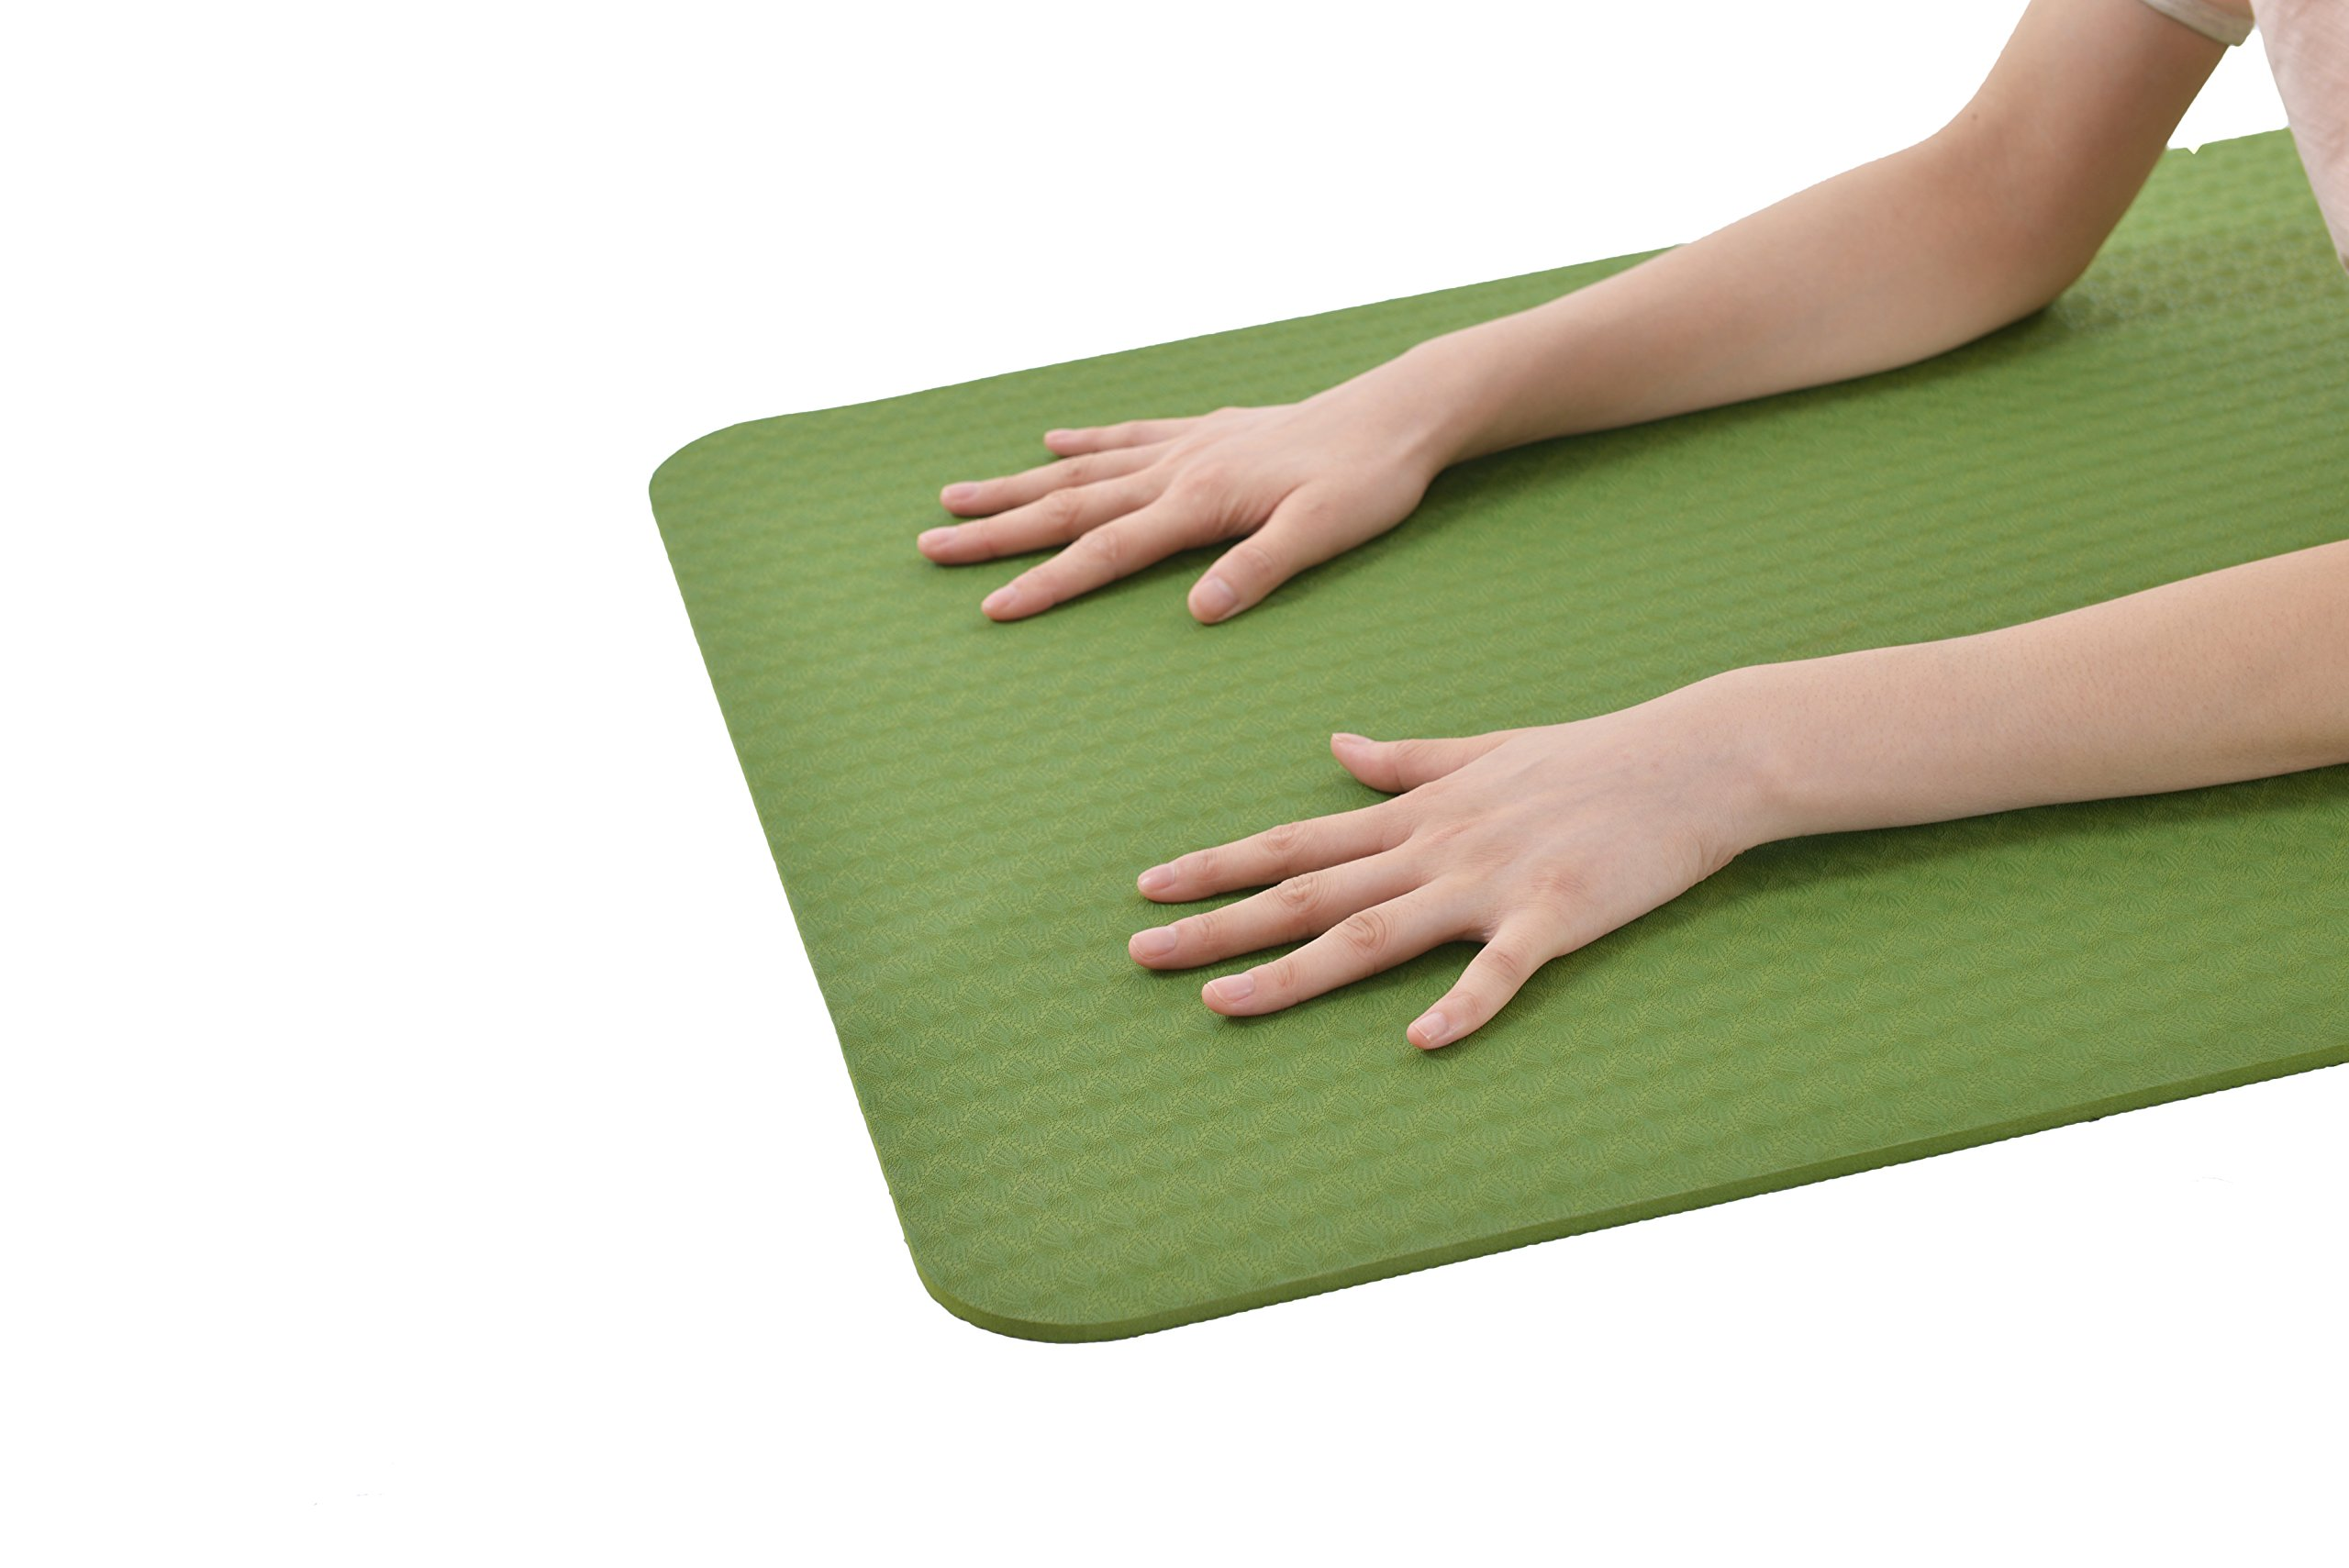 DynActive Yoga Mat by 1/4'' (7mm) Thick Premium Non Slip Eco-Friendly with Carry Strap- 100% TPE Material The Latest Technology in Yoga- High Density Memory Foam- Non Toxic, Latex Free, PVC Free